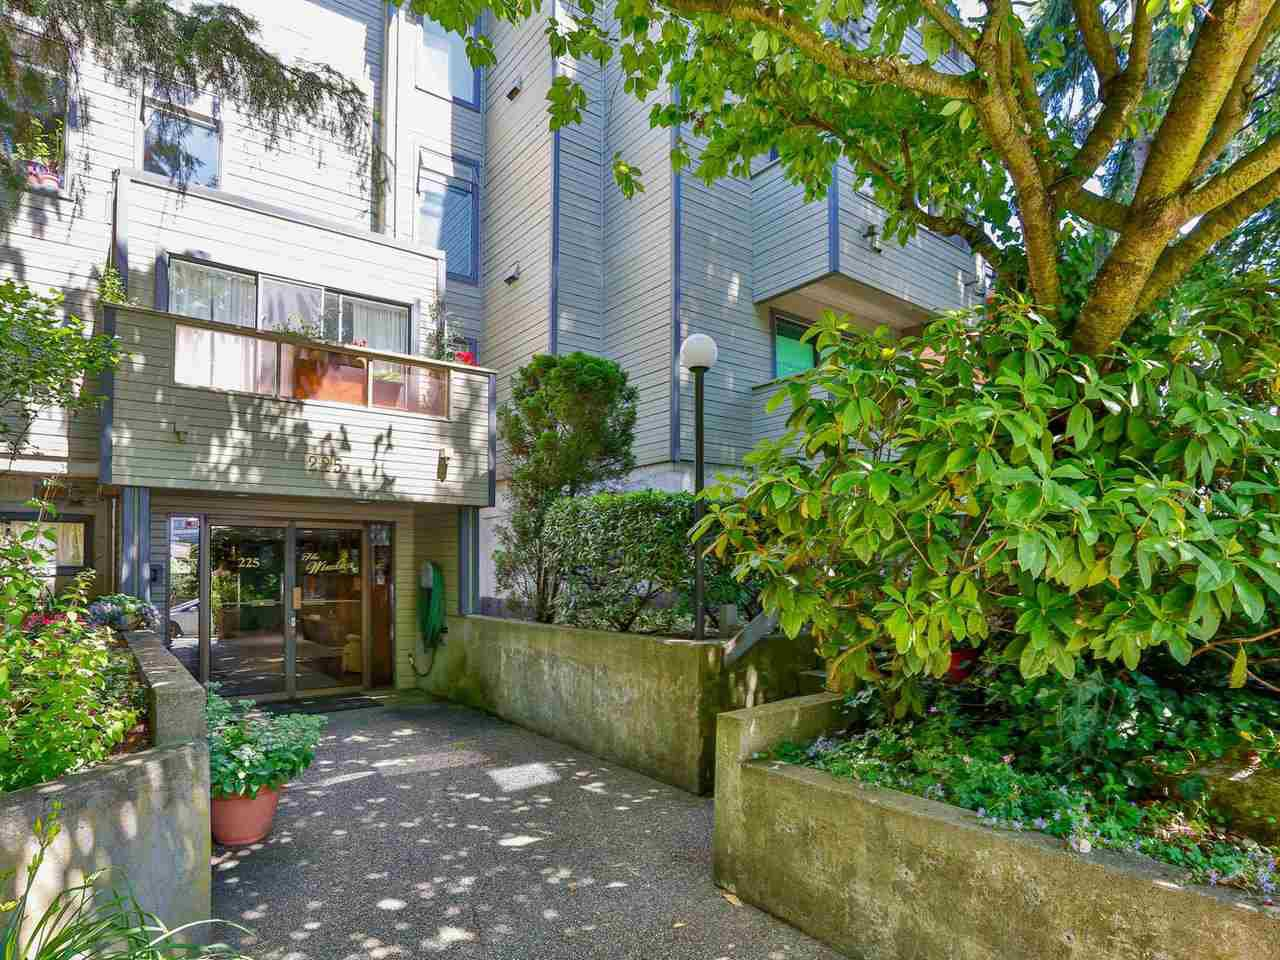 Main Photo: 110 225 MOWAT Street in New Westminster: Uptown NW Condo for sale : MLS®# R2468883